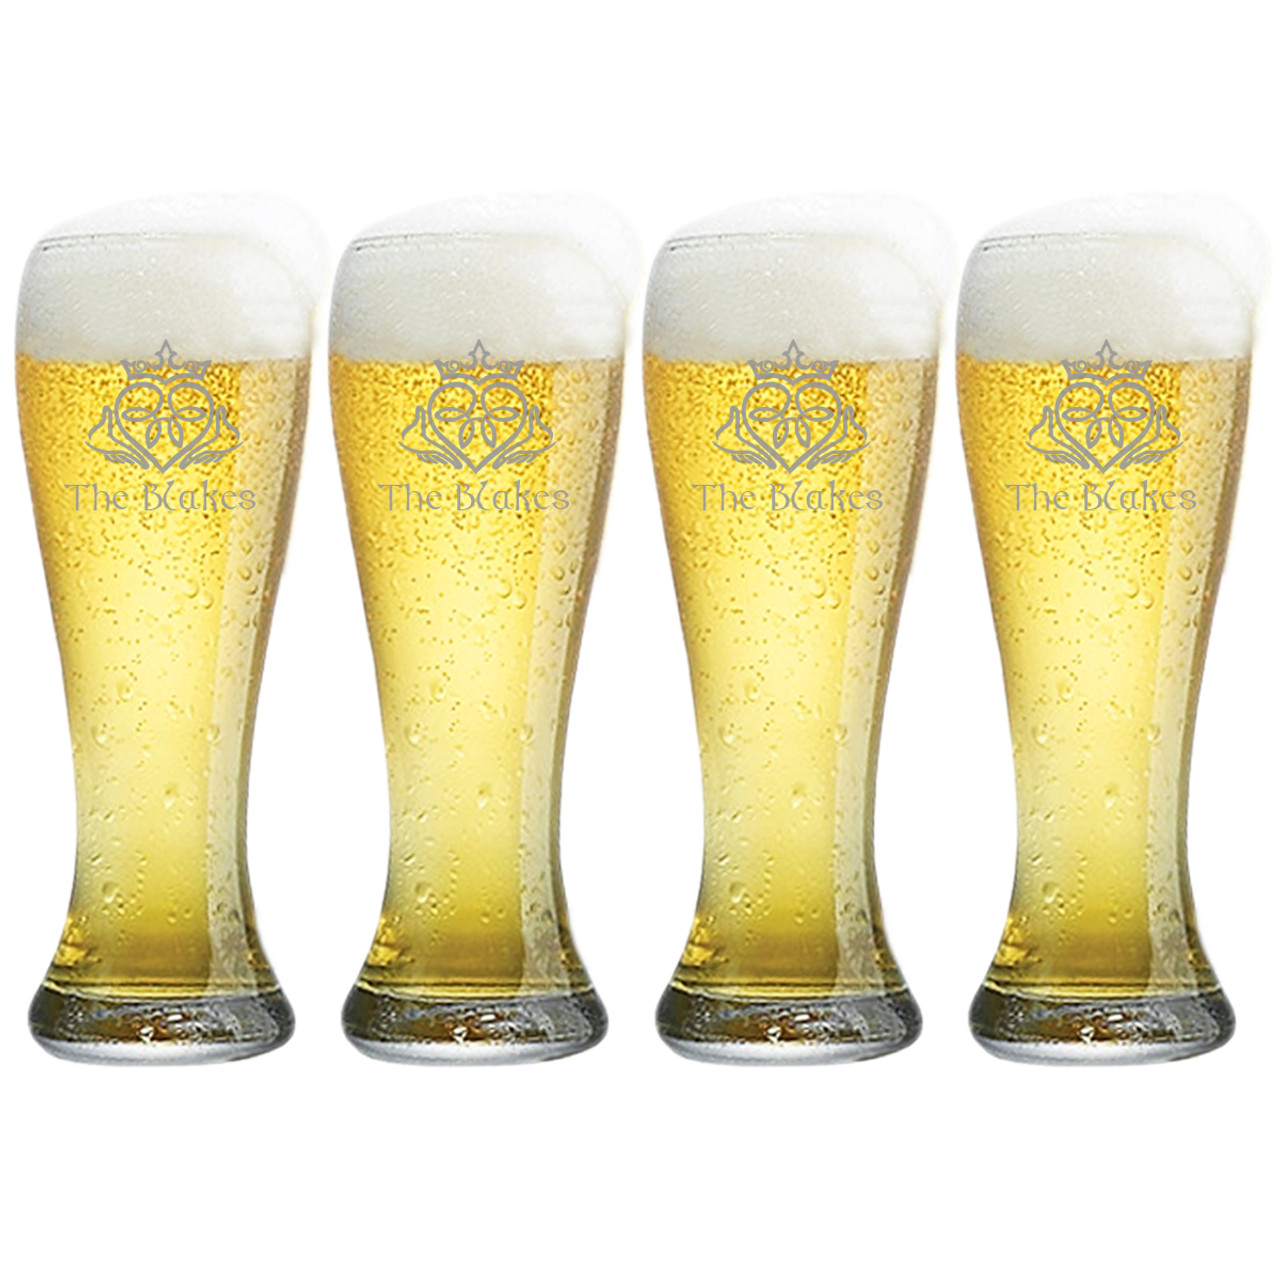 personalized pilsner glass set of 4 claddagh with celtic name